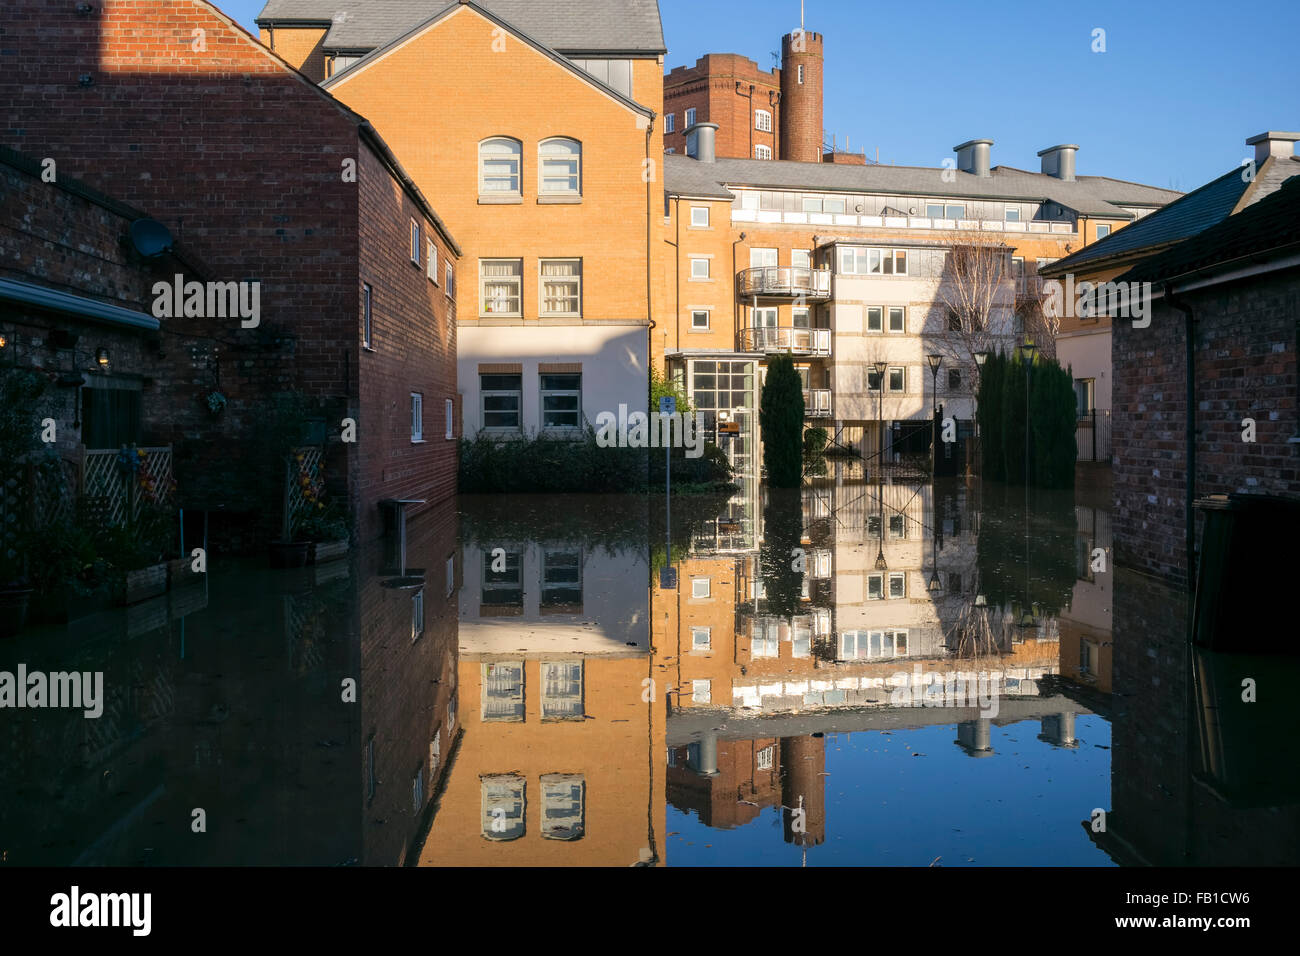 'Leetham's flour mill' reflected in Dixon's Yard following the flooding of the River Foss, Christmas 2015, York, Stock Photo